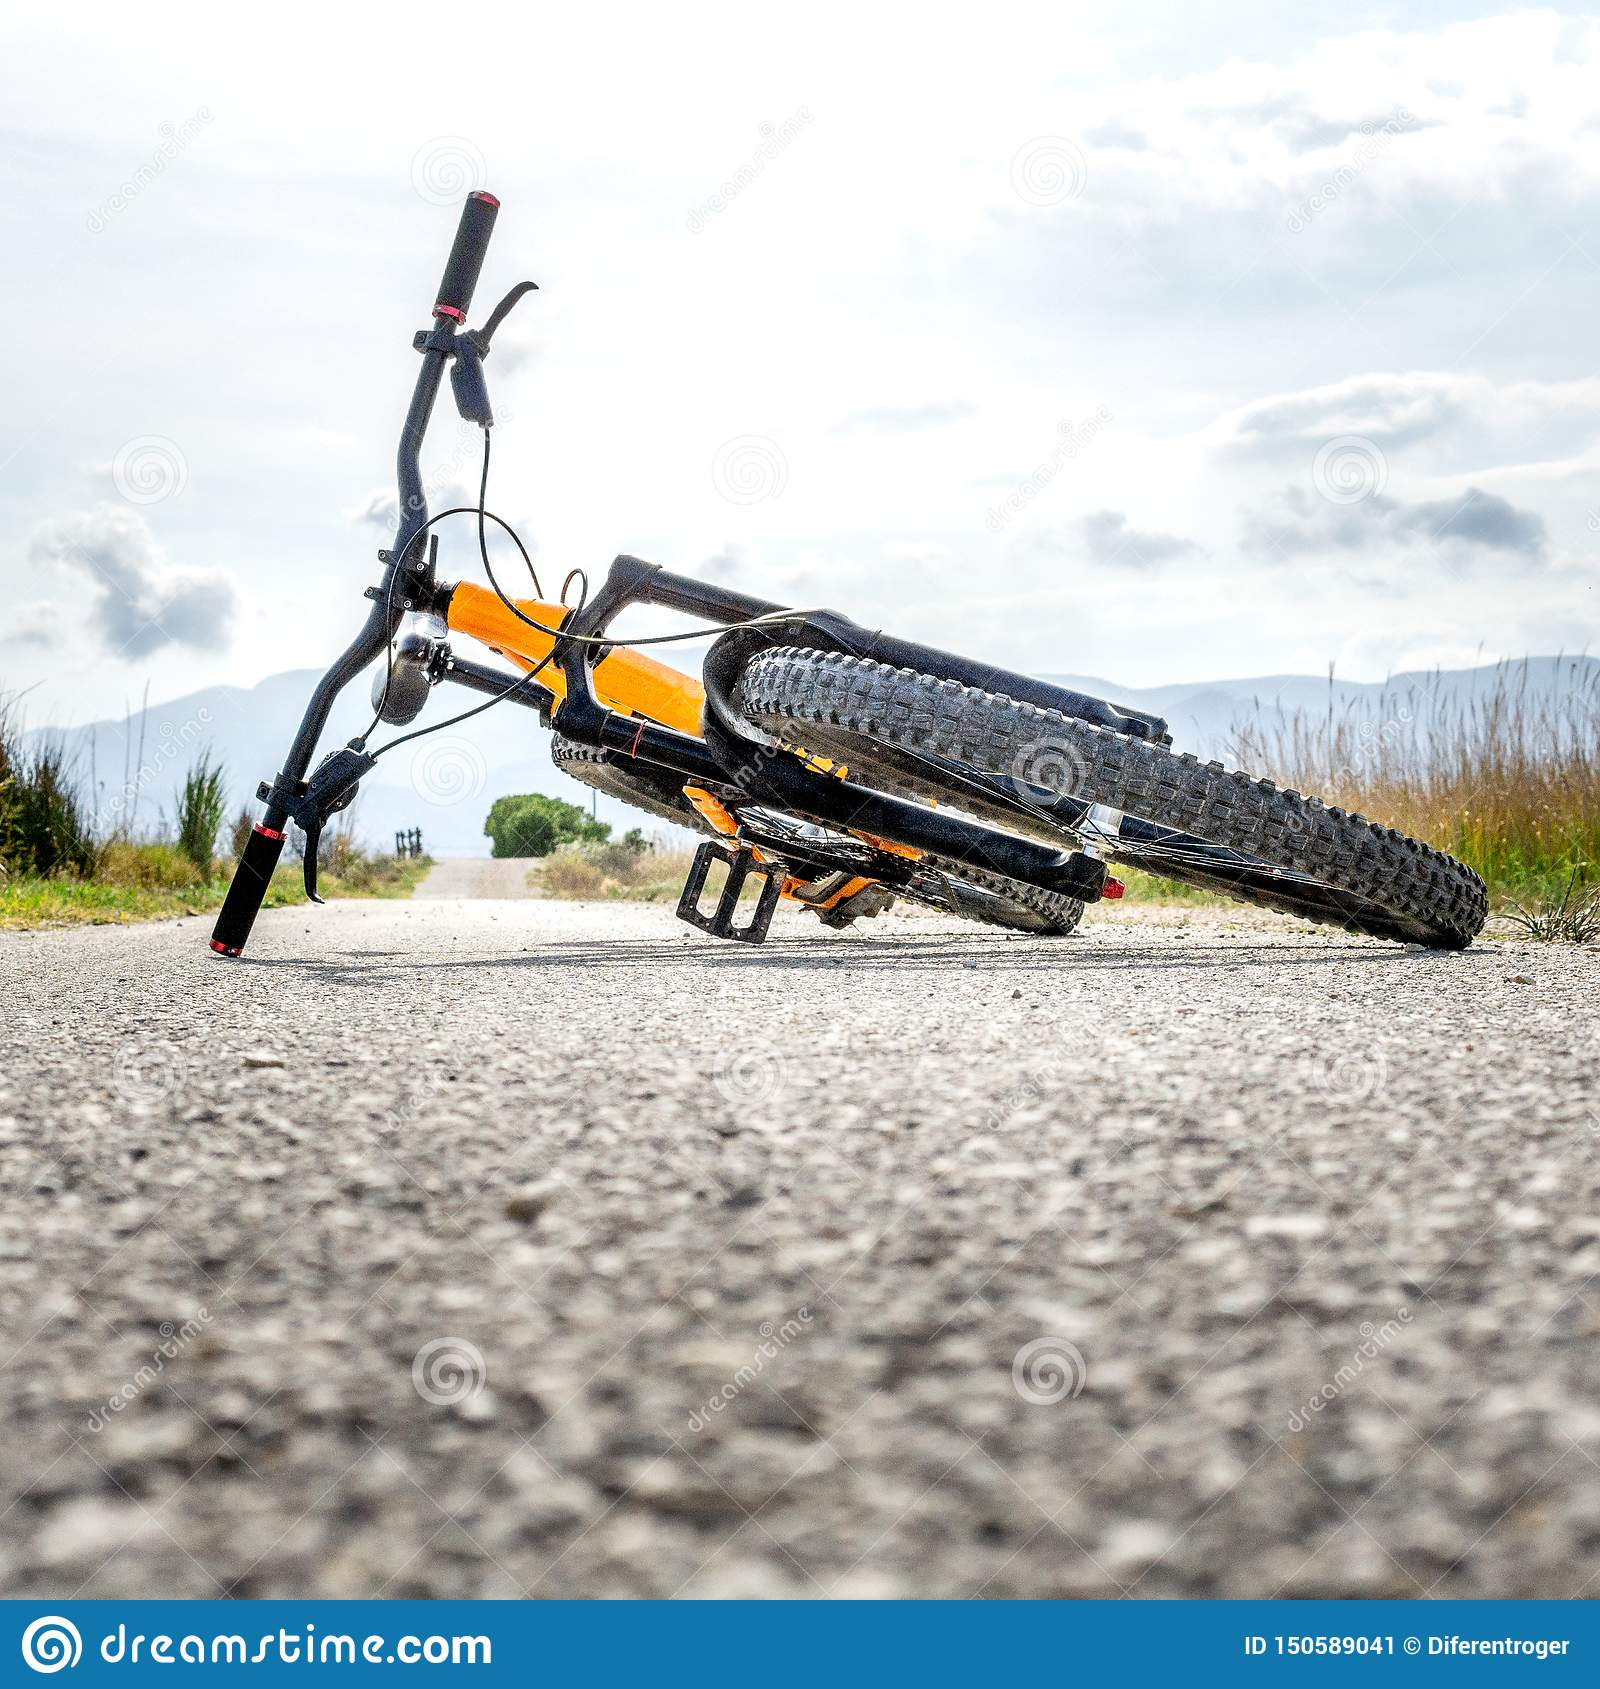 Mountain bike stretched on the ground without people